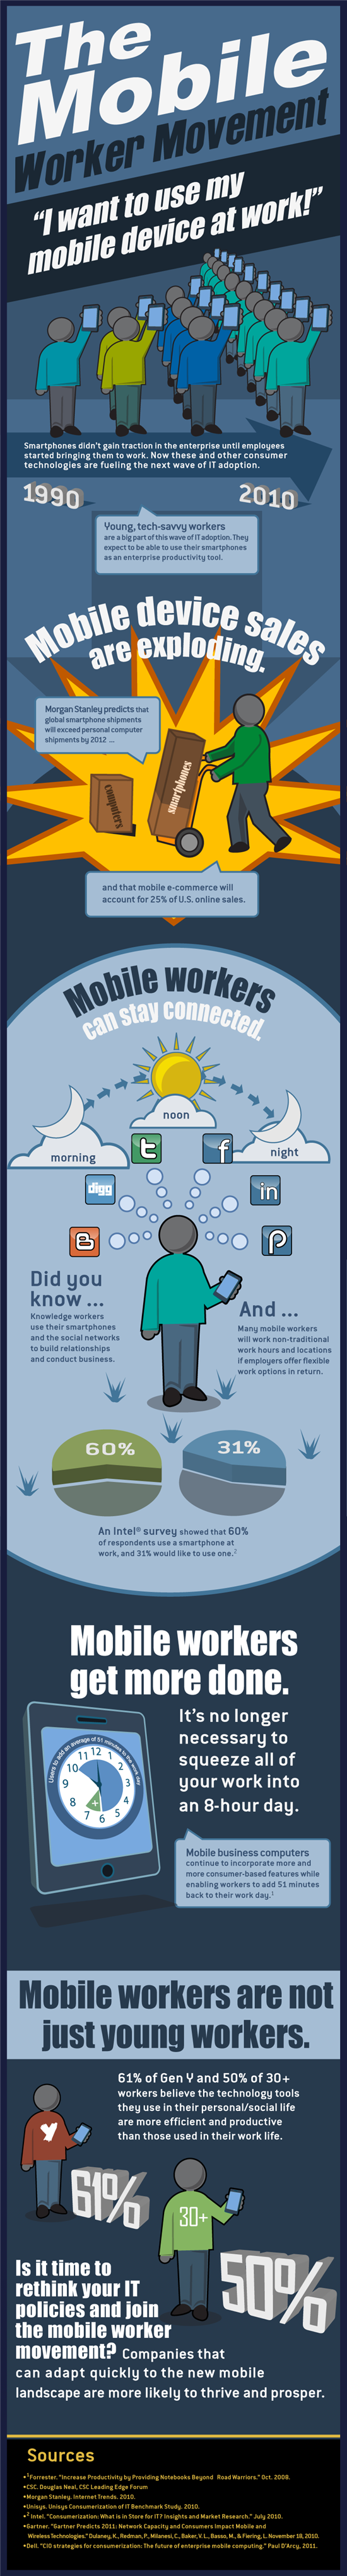 mobile devices at work-Infographic